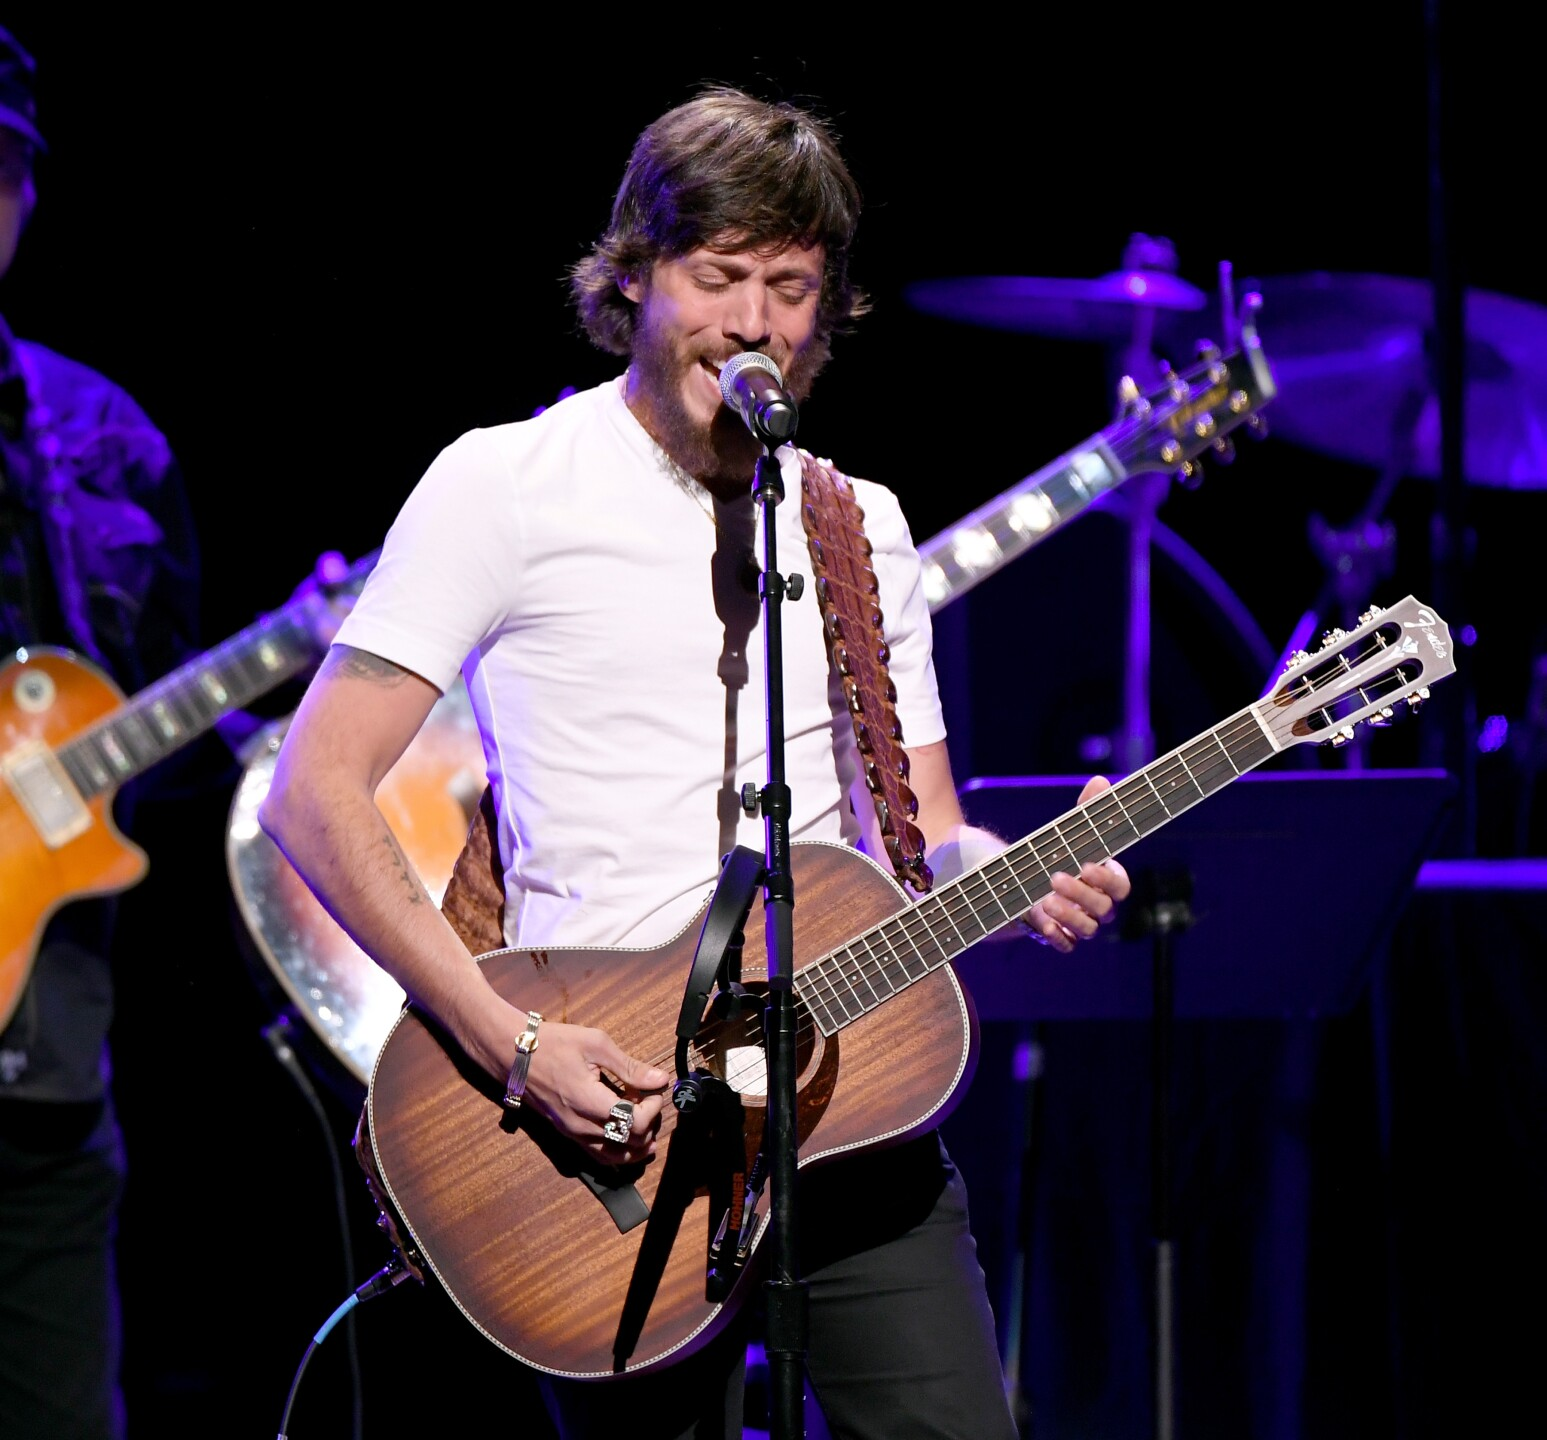 Chris Janson to perform at Summerfest 2019.